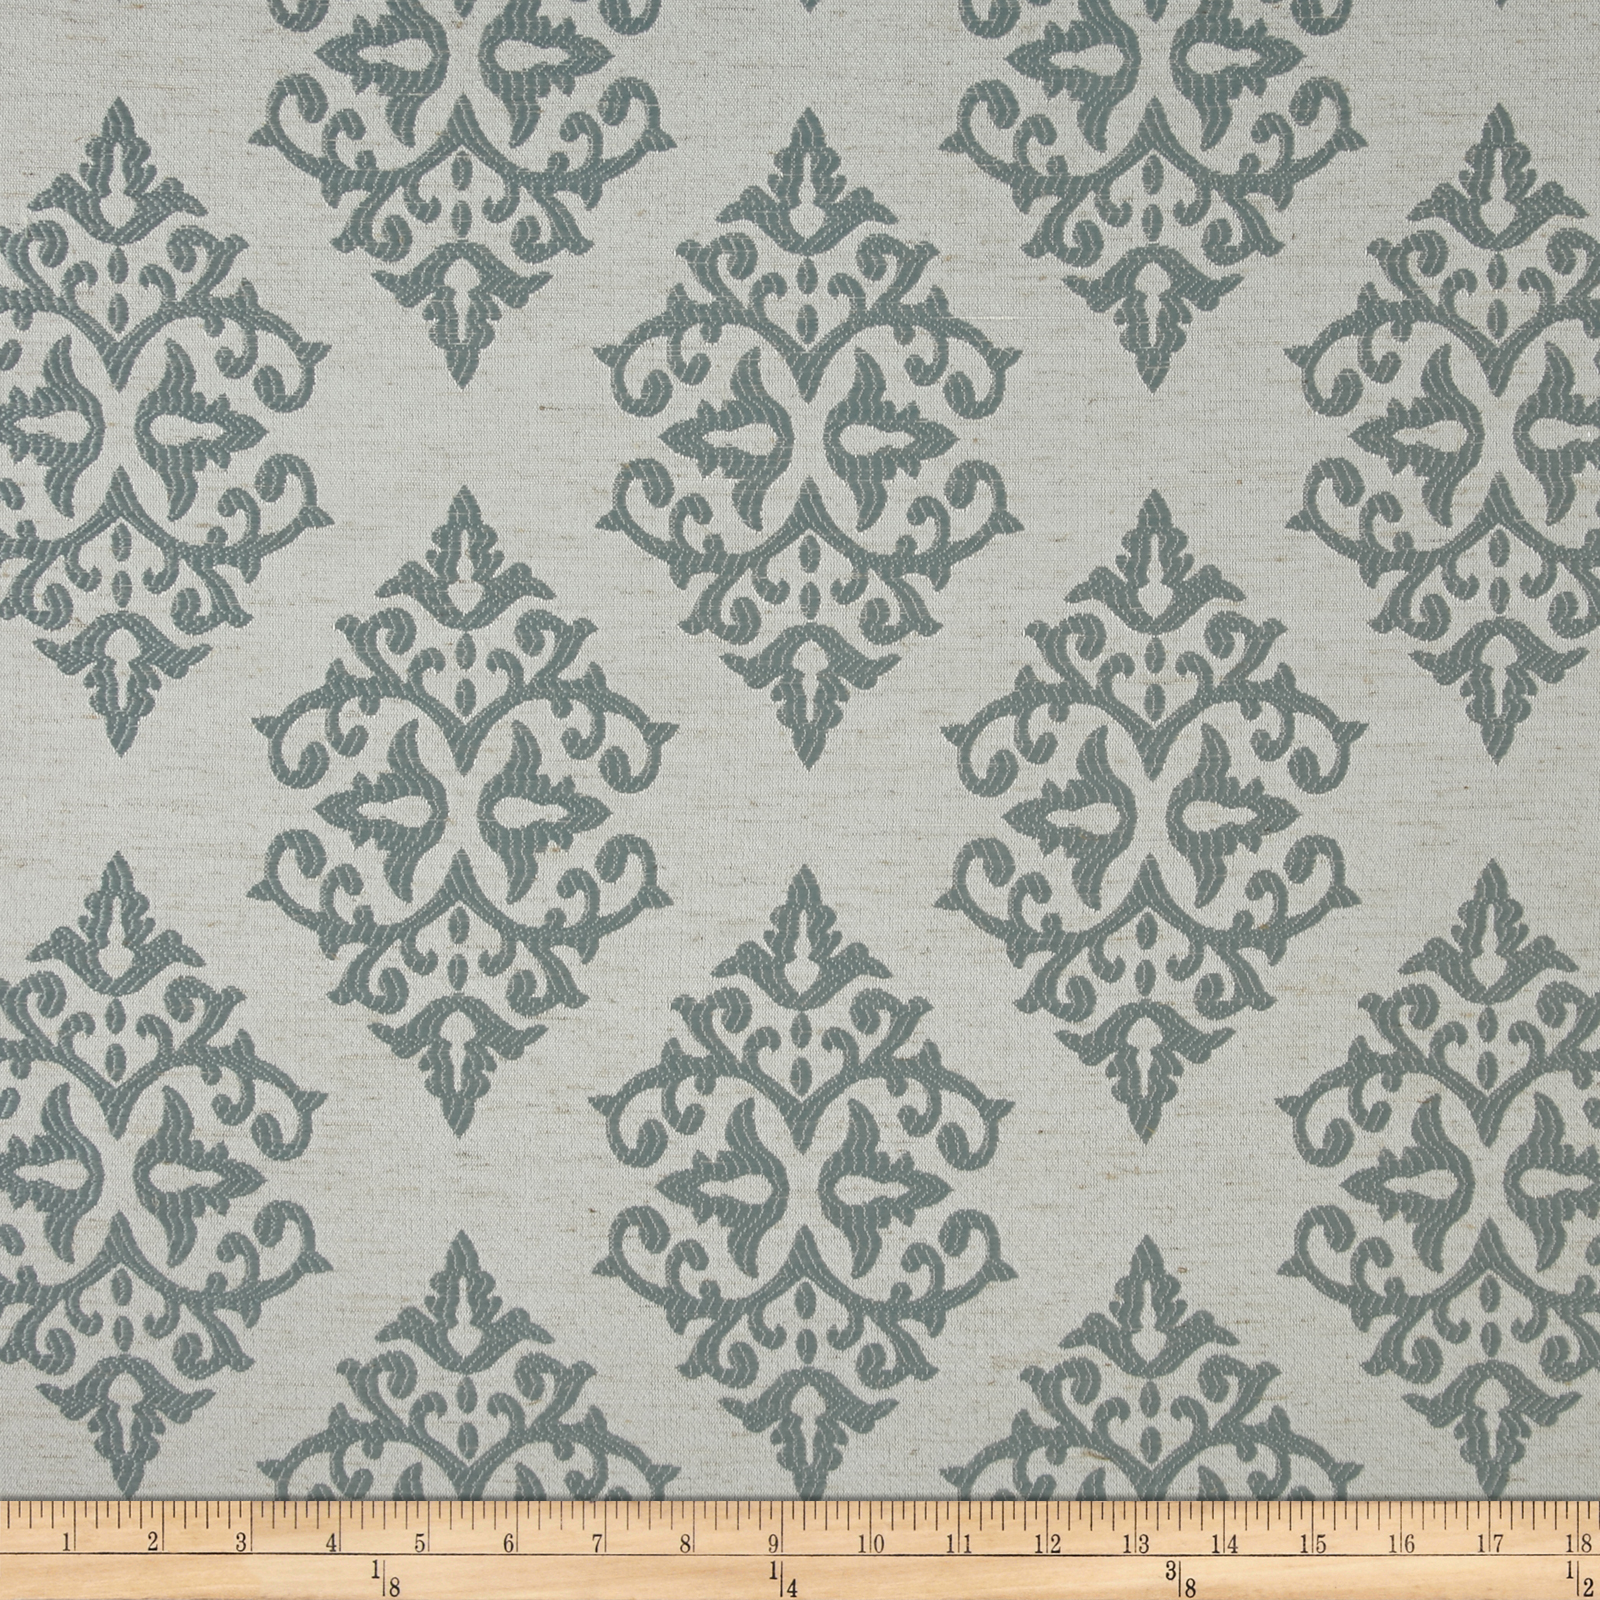 Eroica Chelsea Jacquard Sky Fabric by Eroica in USA